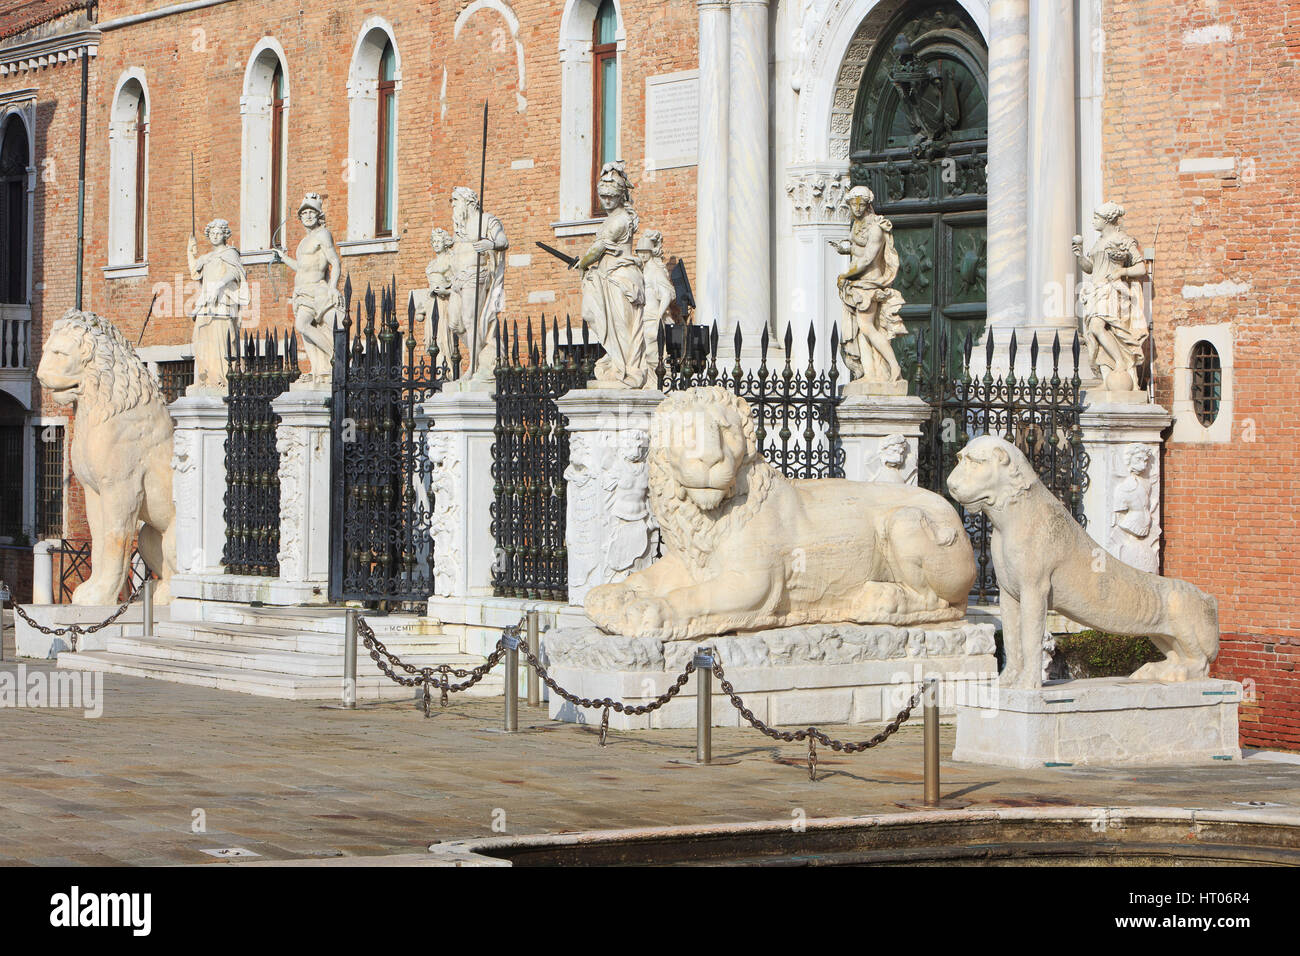 The Venetian Arsenal's main gate, the Porta Magna (1460) flanked by the Piraeus Lion and various other lions - Stock Image